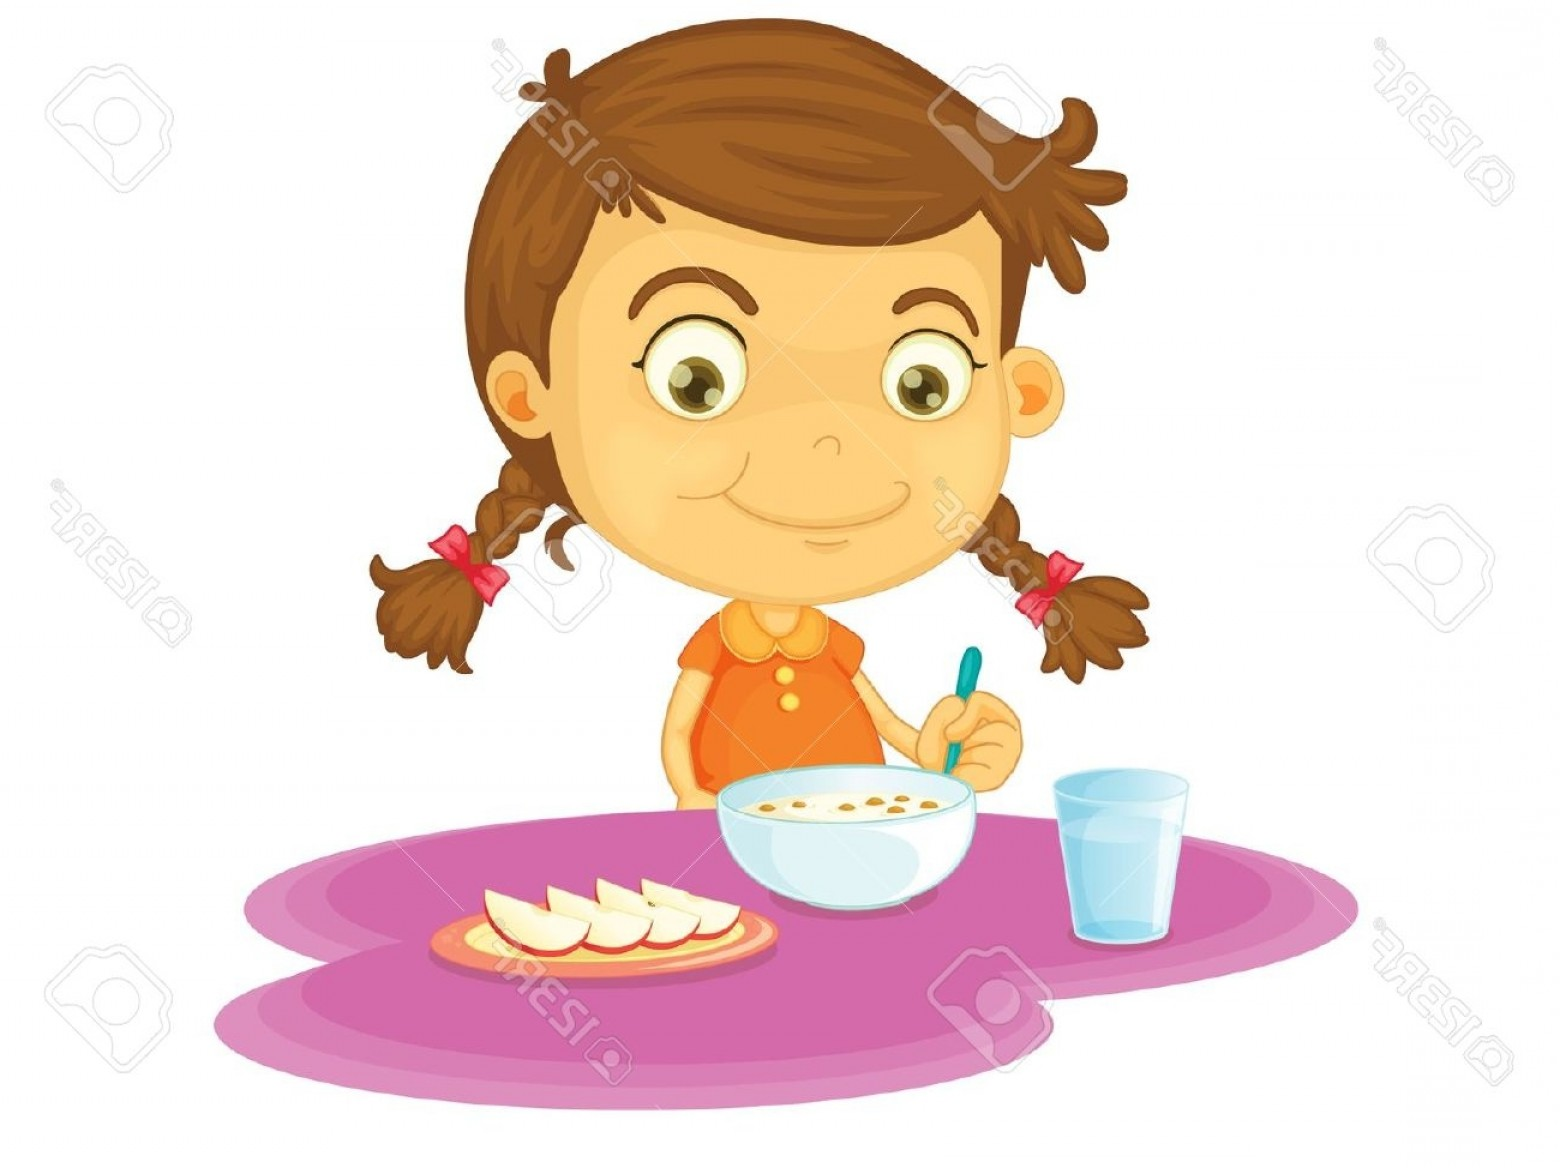 Girl eating breakfast cliparts image freeuse Girl Eating Clipart | Free download best Girl Eating Clipart on ... image freeuse